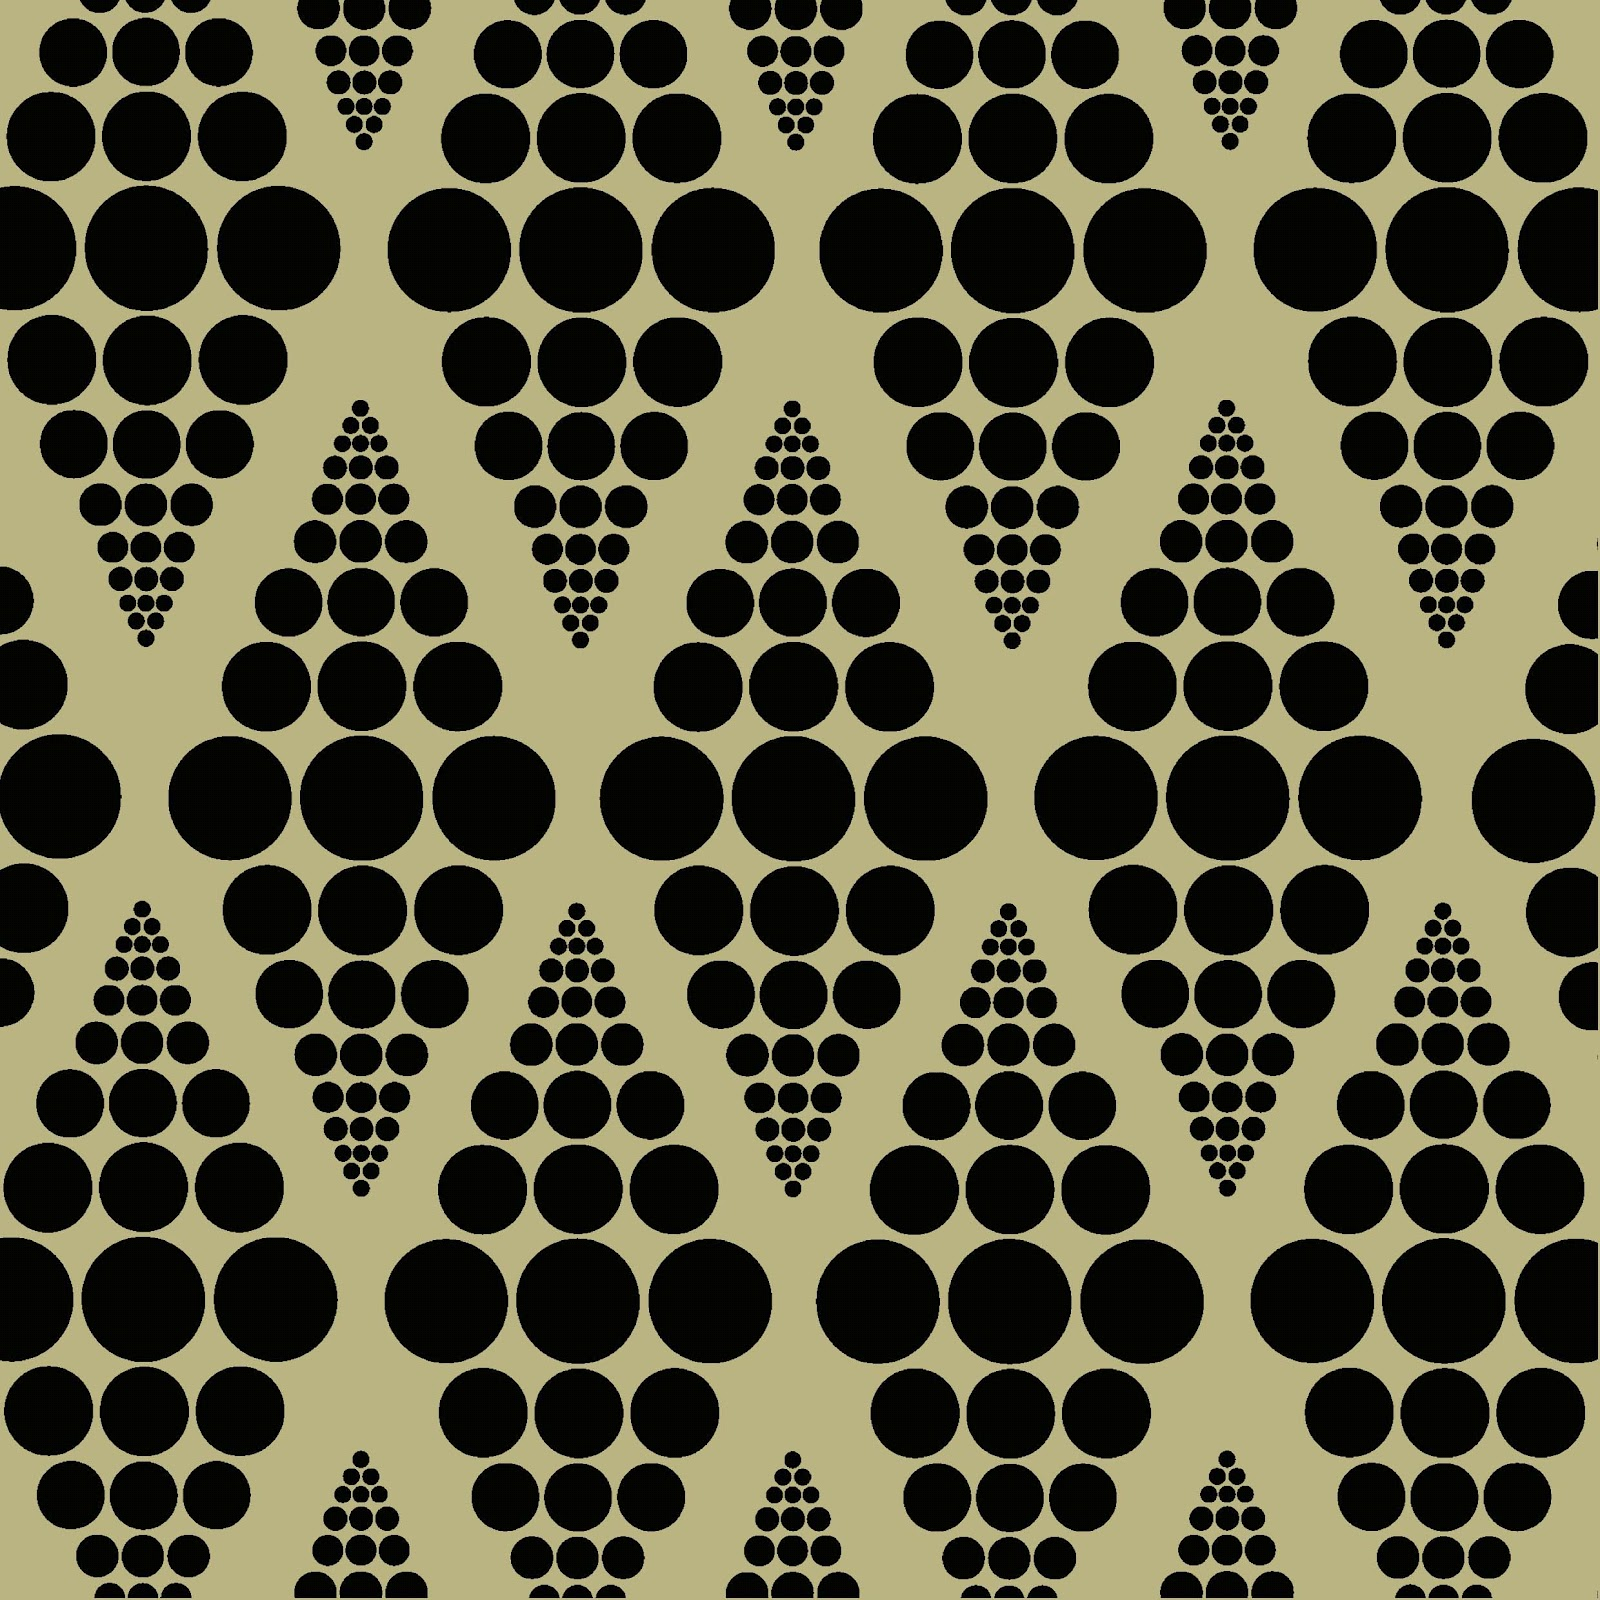 Simple Geometric Design Patterns